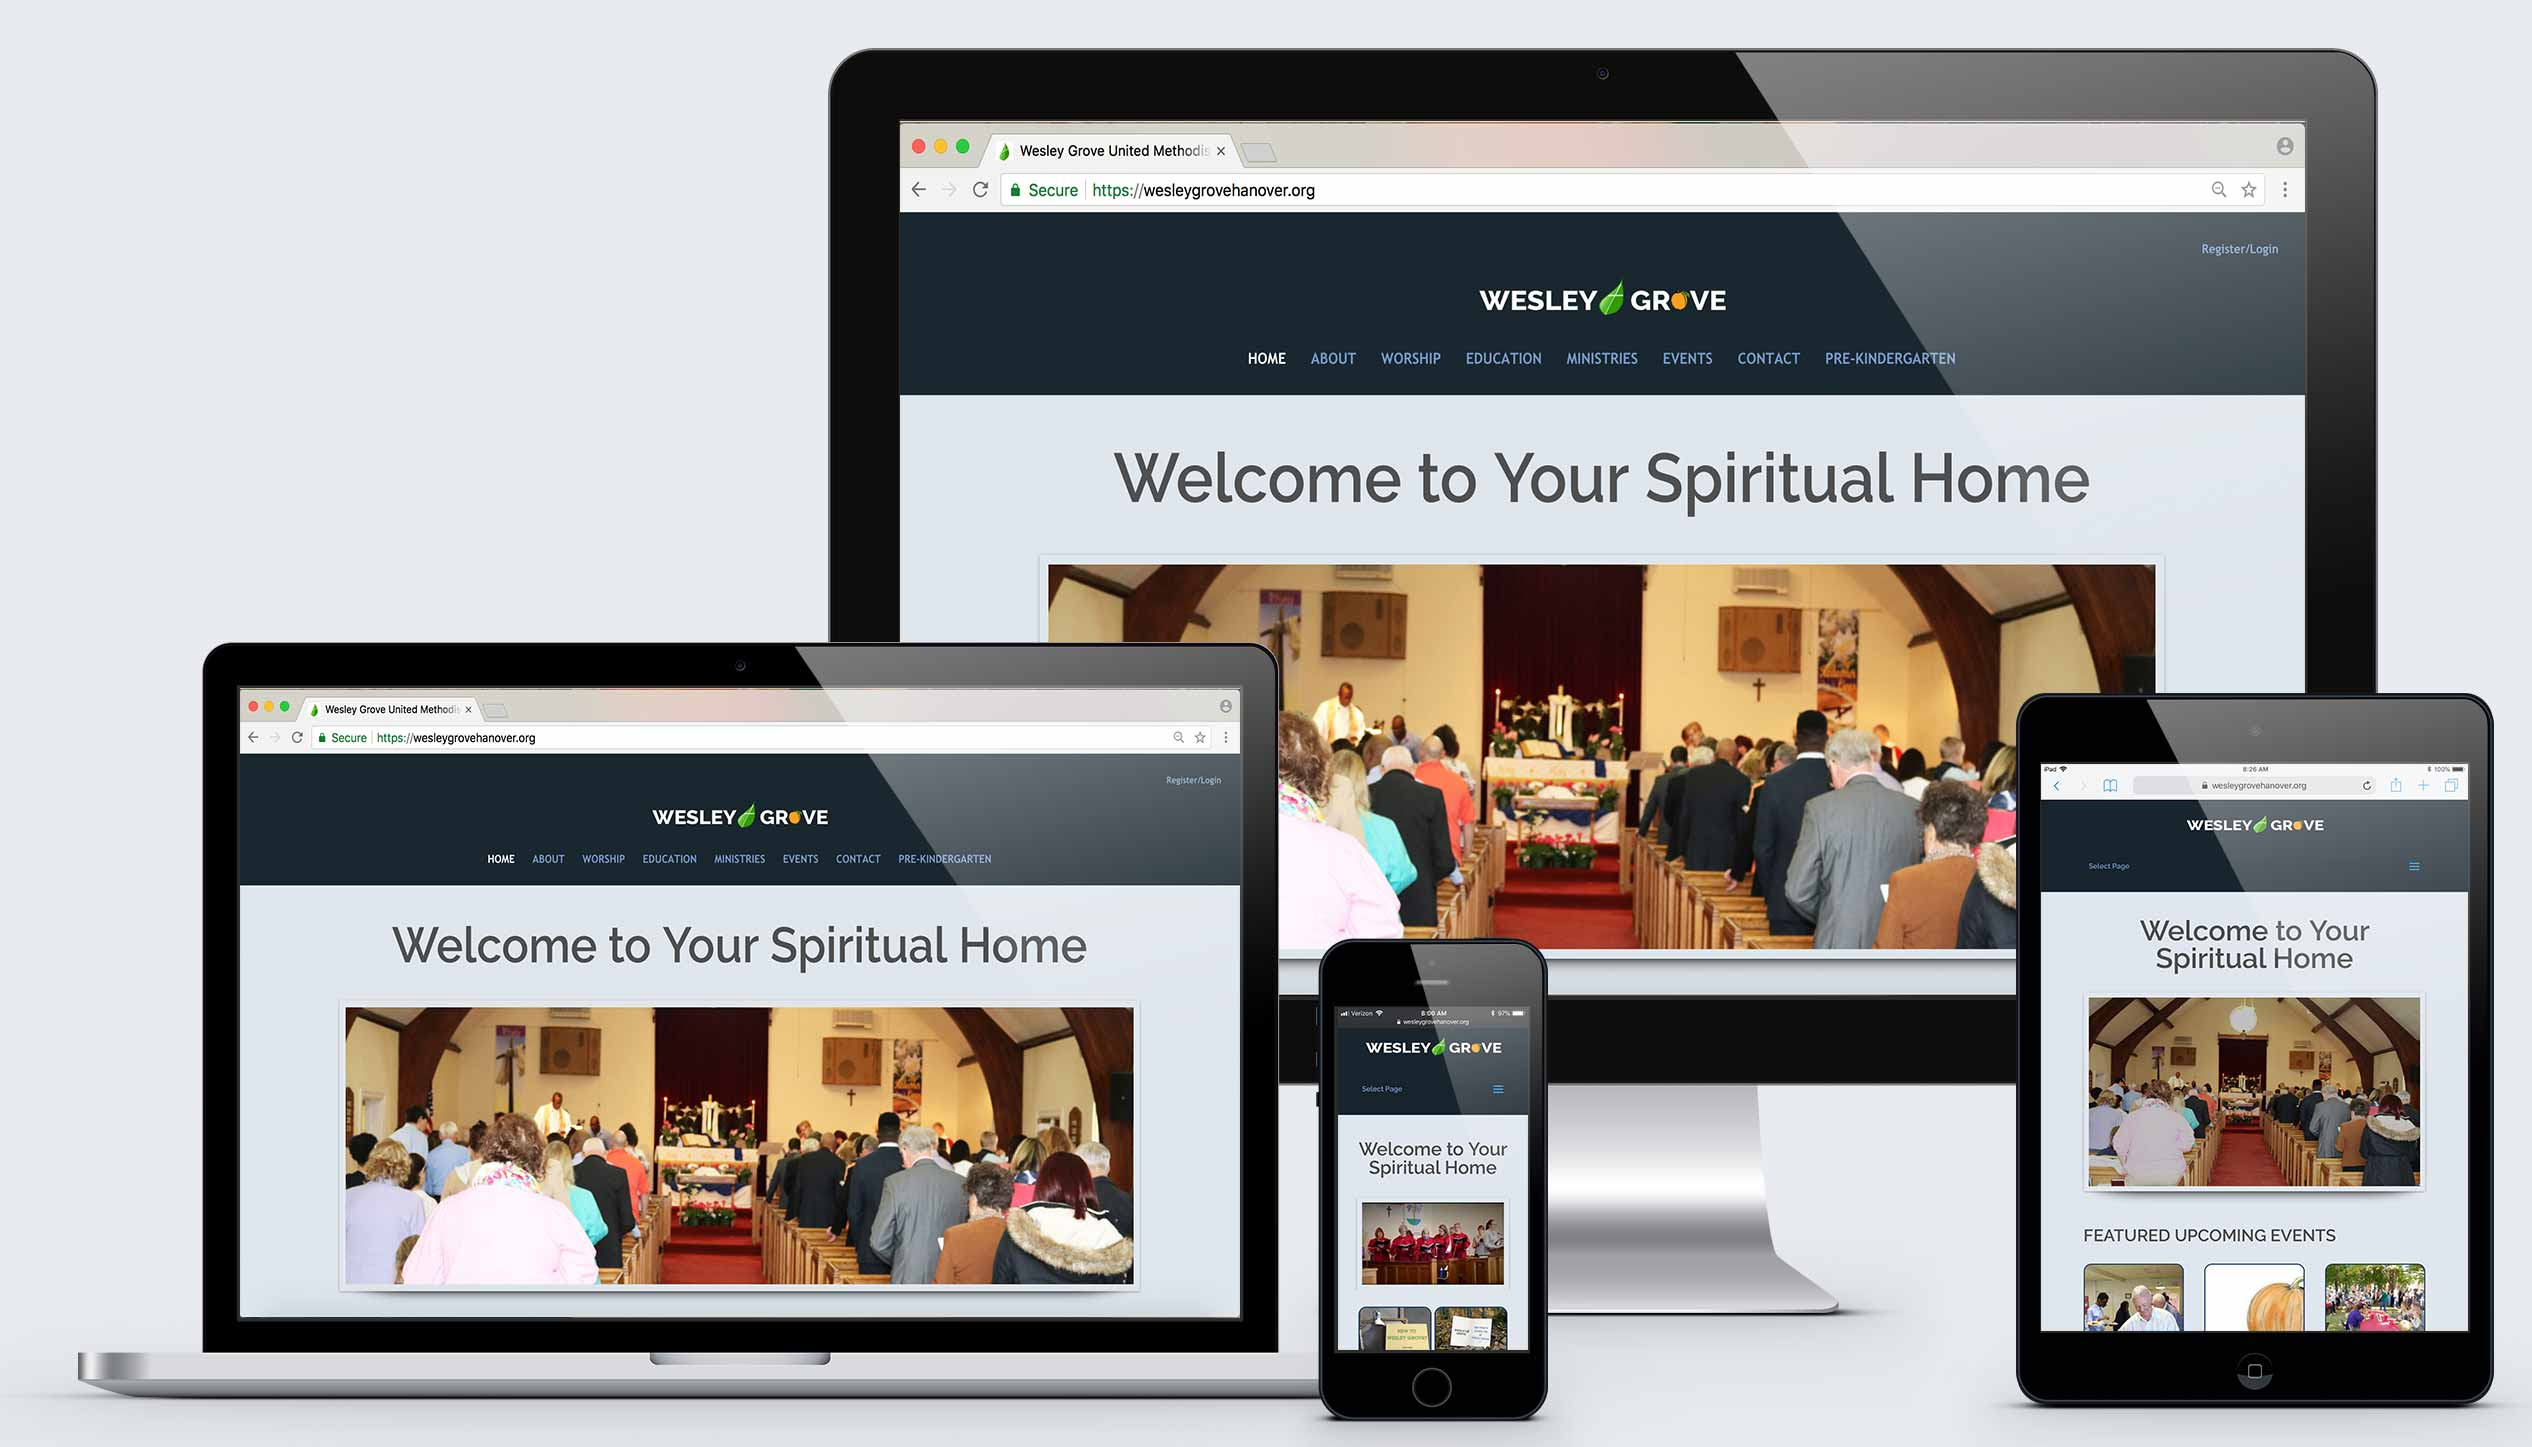 Wesley Grove UMC website by Raving Software